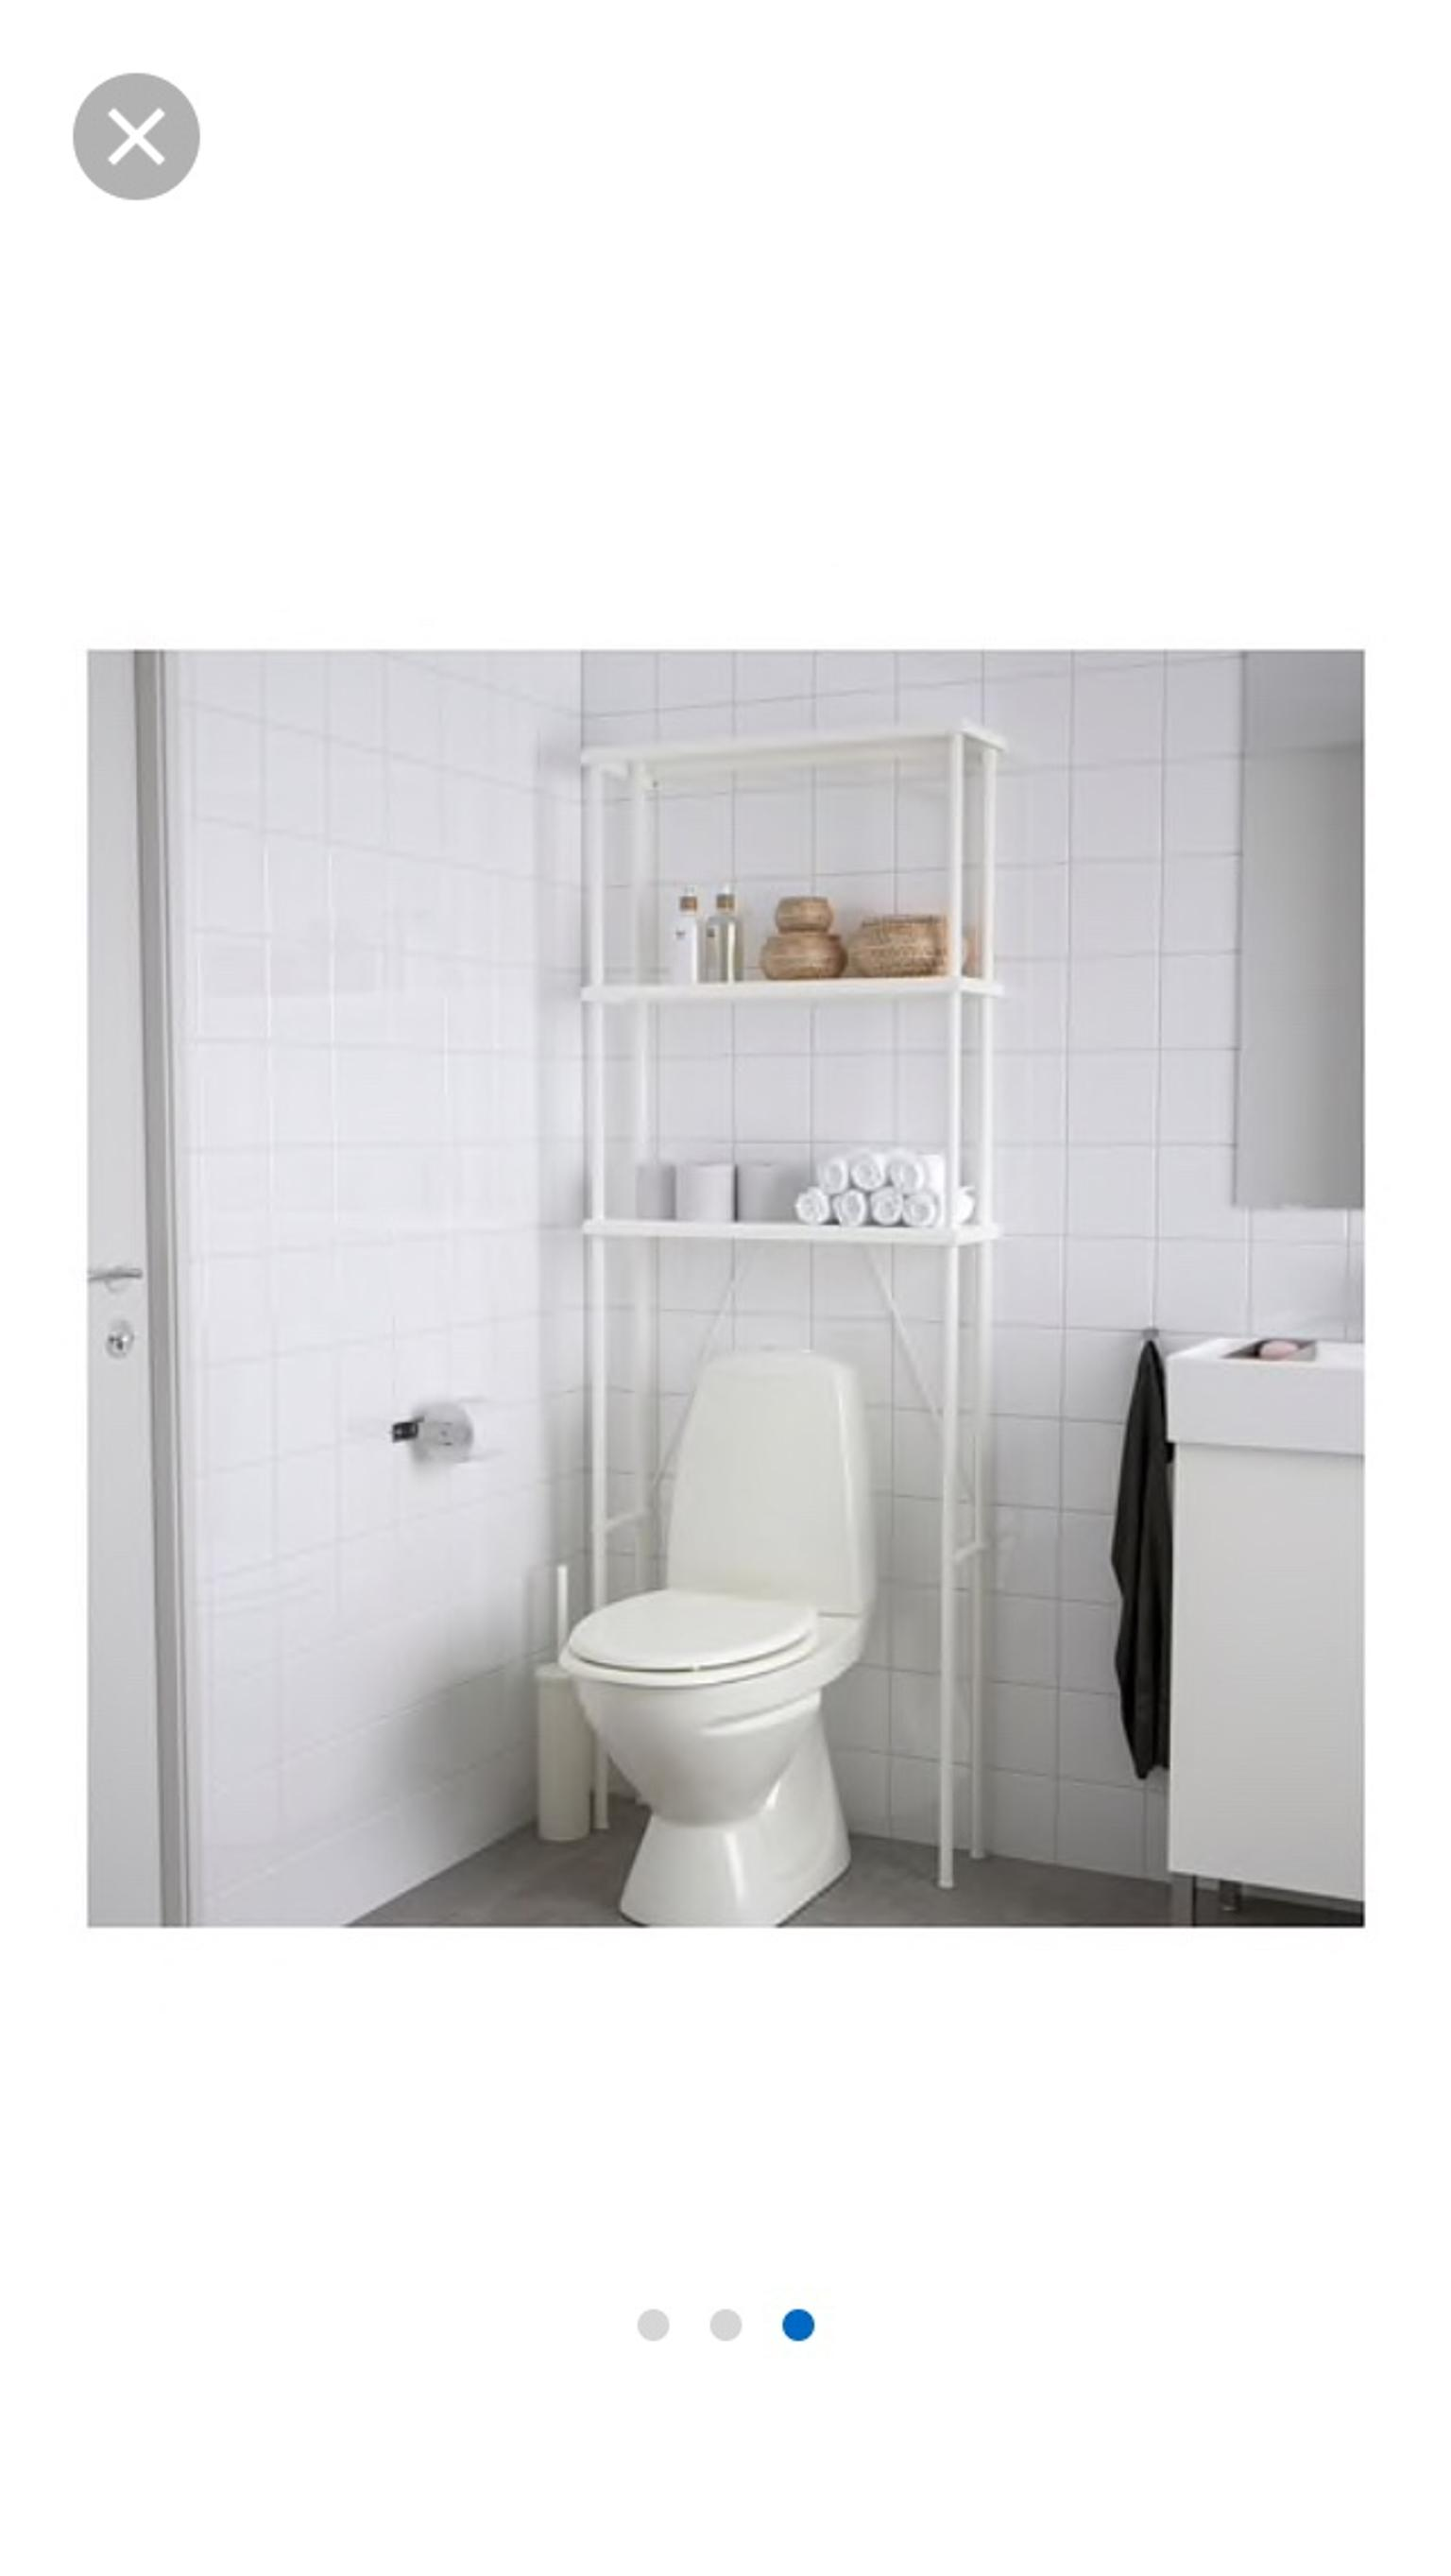 IKEA DYNAN Regal WC Regal in 2183 Gemeinde Neusiedl an der